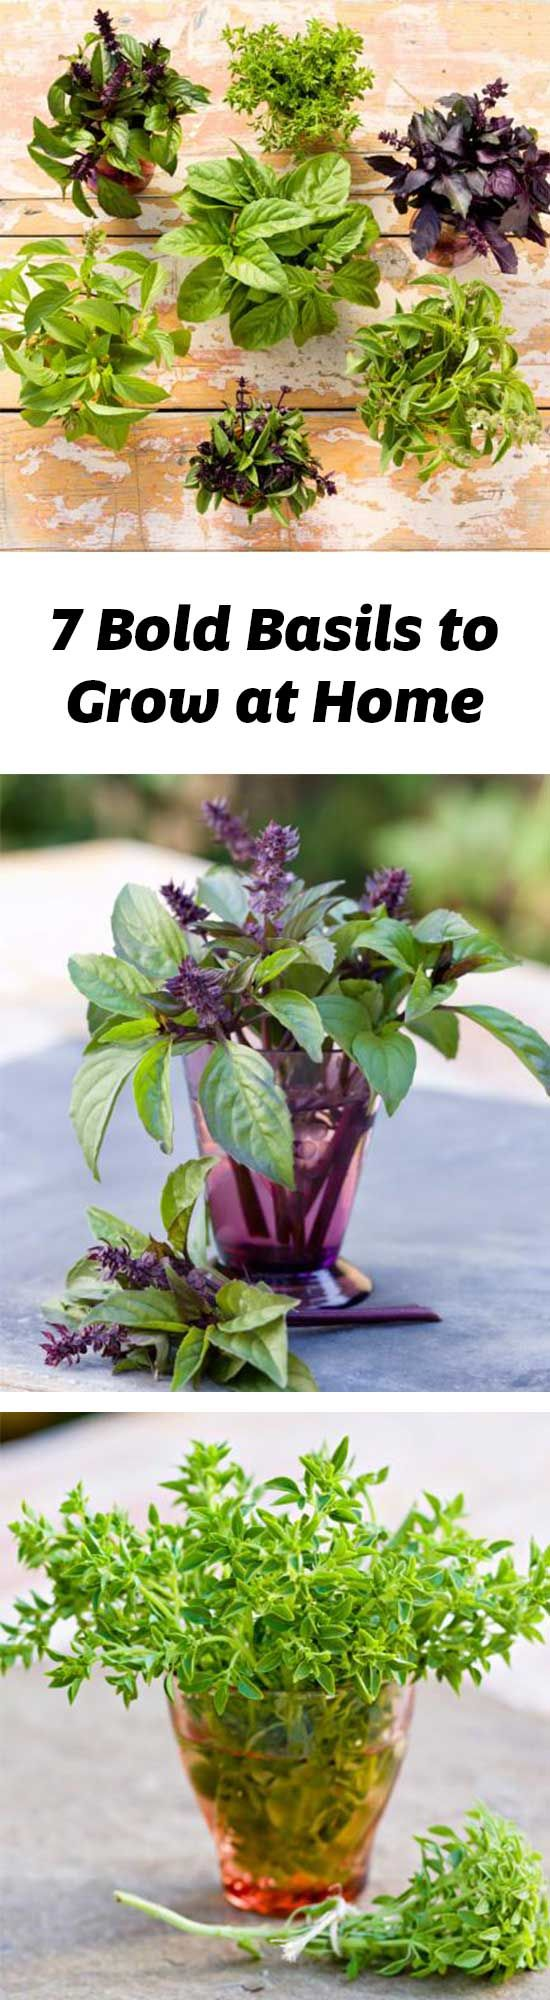 Easy-to-grow basil will thrive in a sunny window or garden spot. Try different varieties so you can experiment with adding lemony, peppery or even cinnamon-like flavor to dishes.